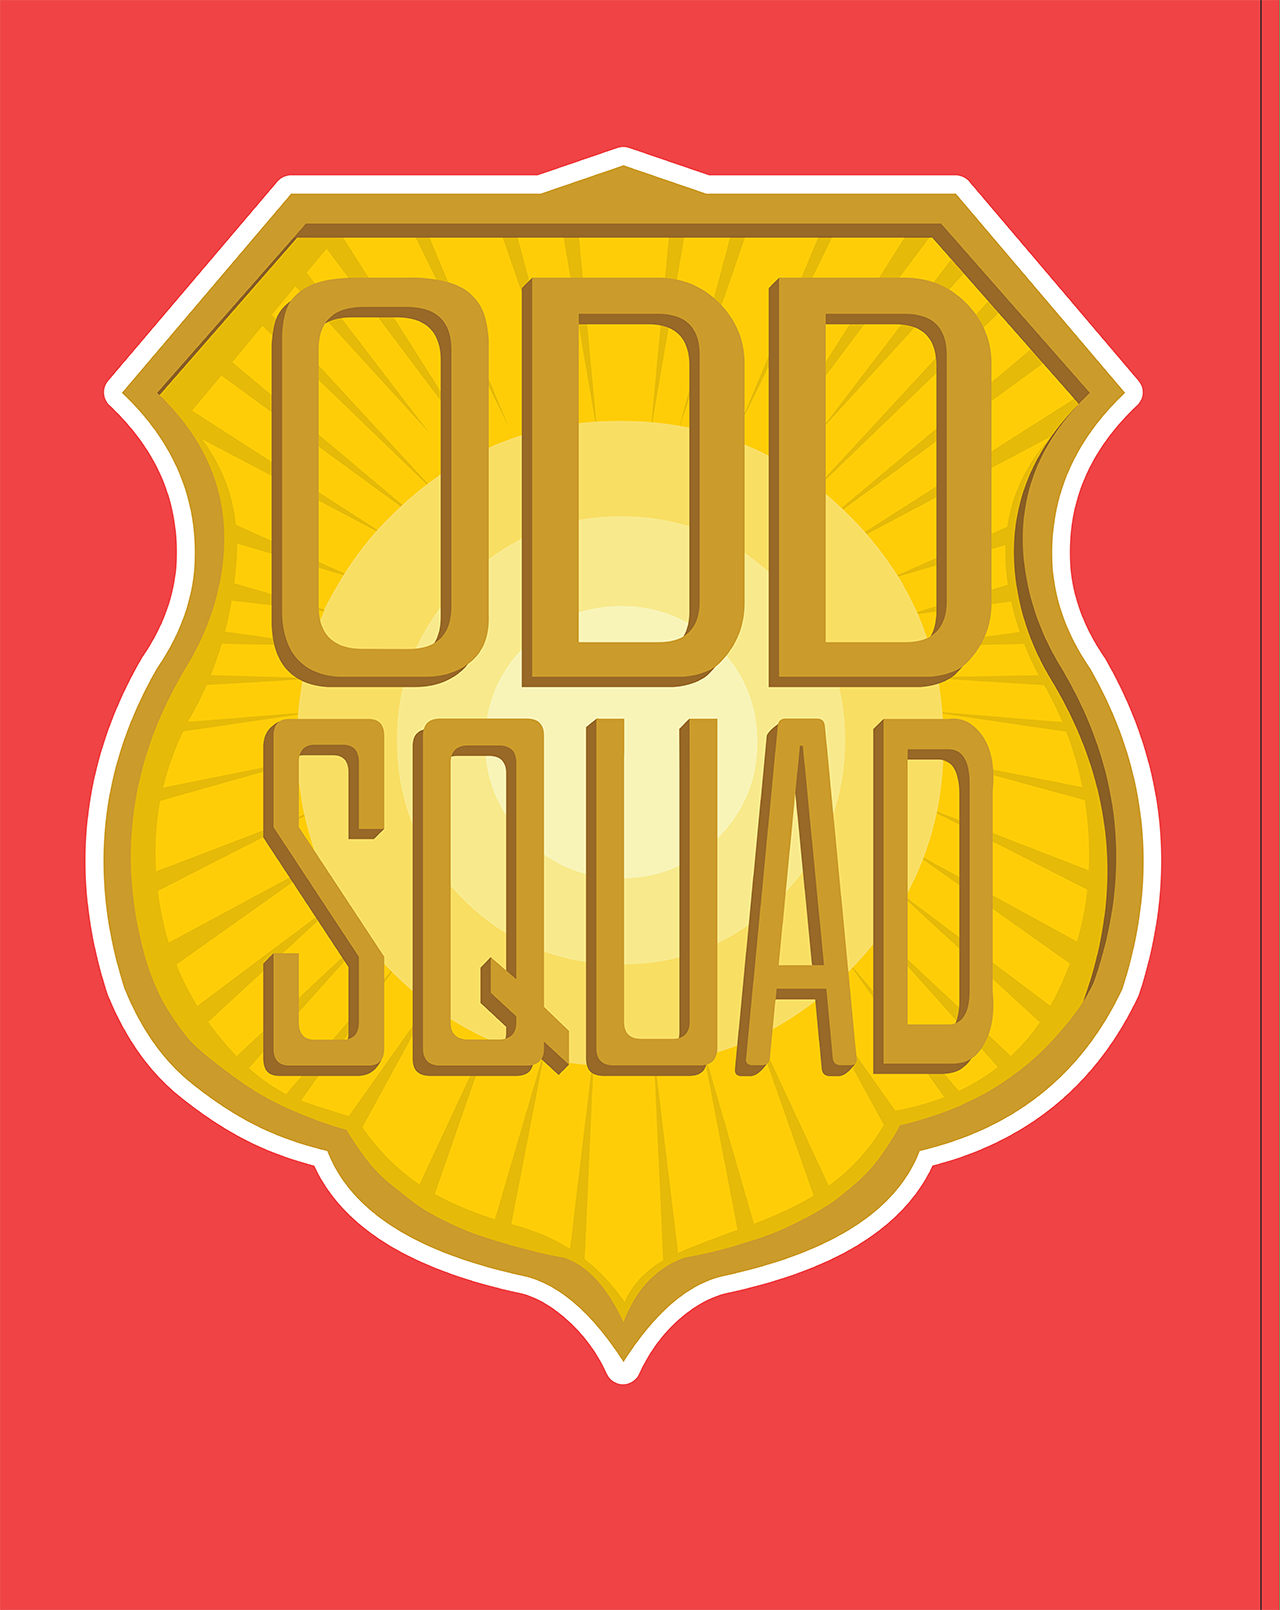 Pair of odd squad specials coming to oeta for Oeta schedule